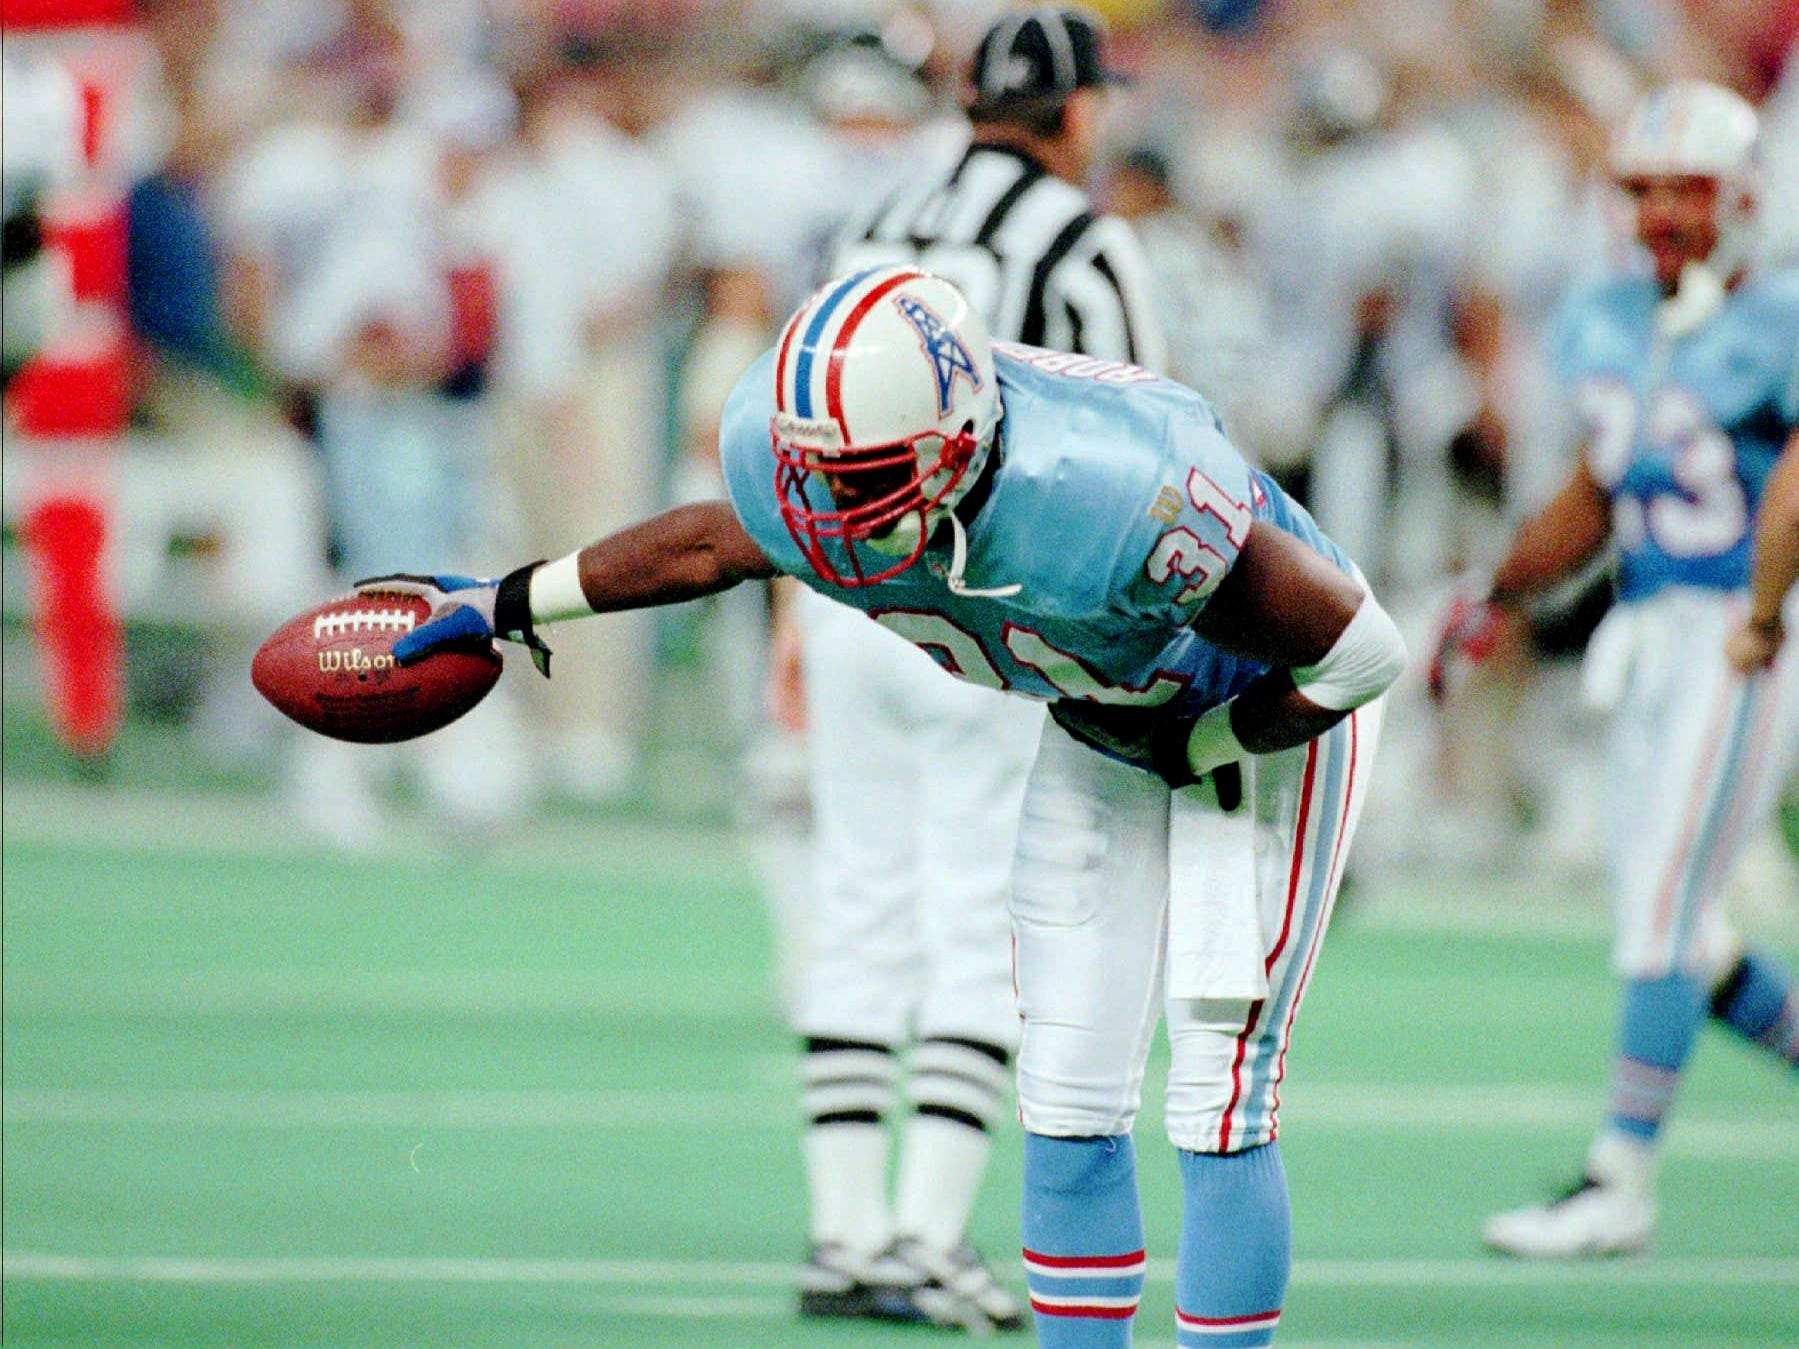 Houston Oilers safety Marcus Robertson (31) takes a bow after intercepting a pass intended for Baltimore Ravens receiver Calvin Williams during the first quarter Sept. 15, 1996 in Houston. The Oilers beat the Ravens 29-13.